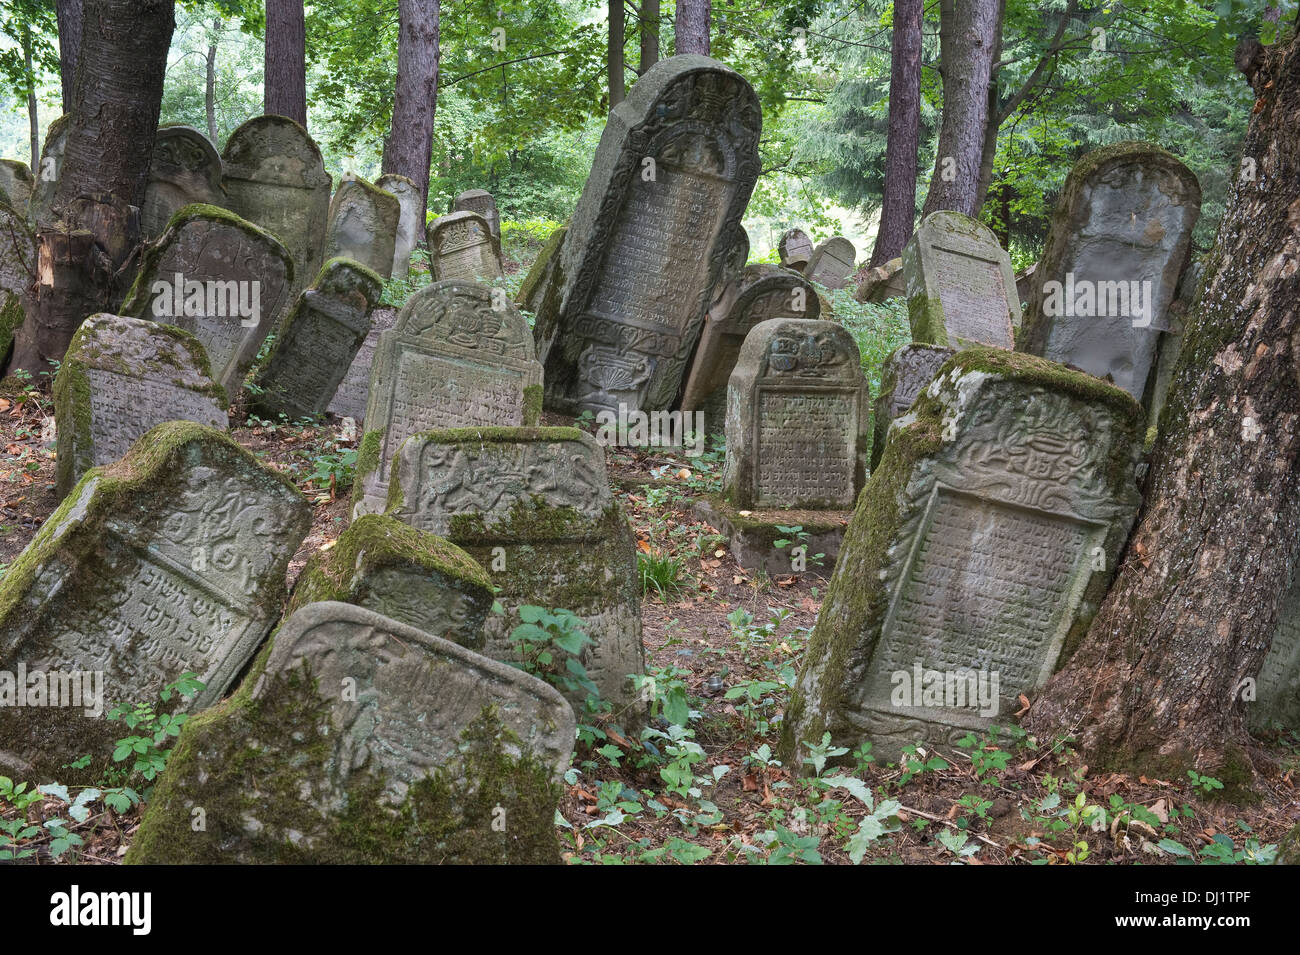 Tombstones dating back to the sixteenth century one of Poland's oldest, Kirkut, Jewish cemeteries Lesko Bieszczady - Stock Image